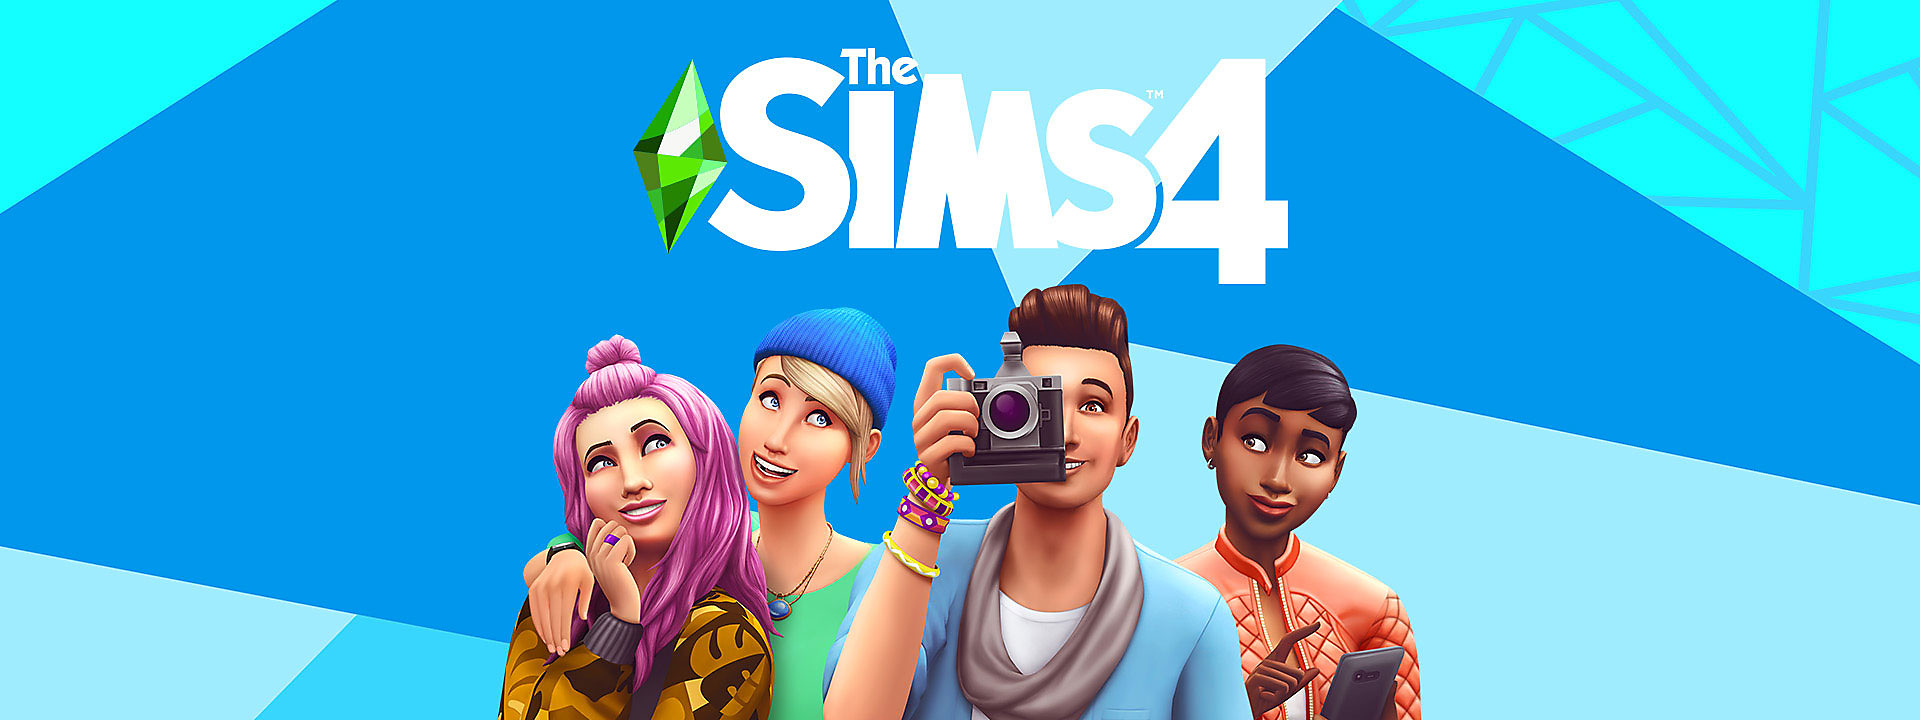 The Sims 4 Game | PS4 - PlayStation